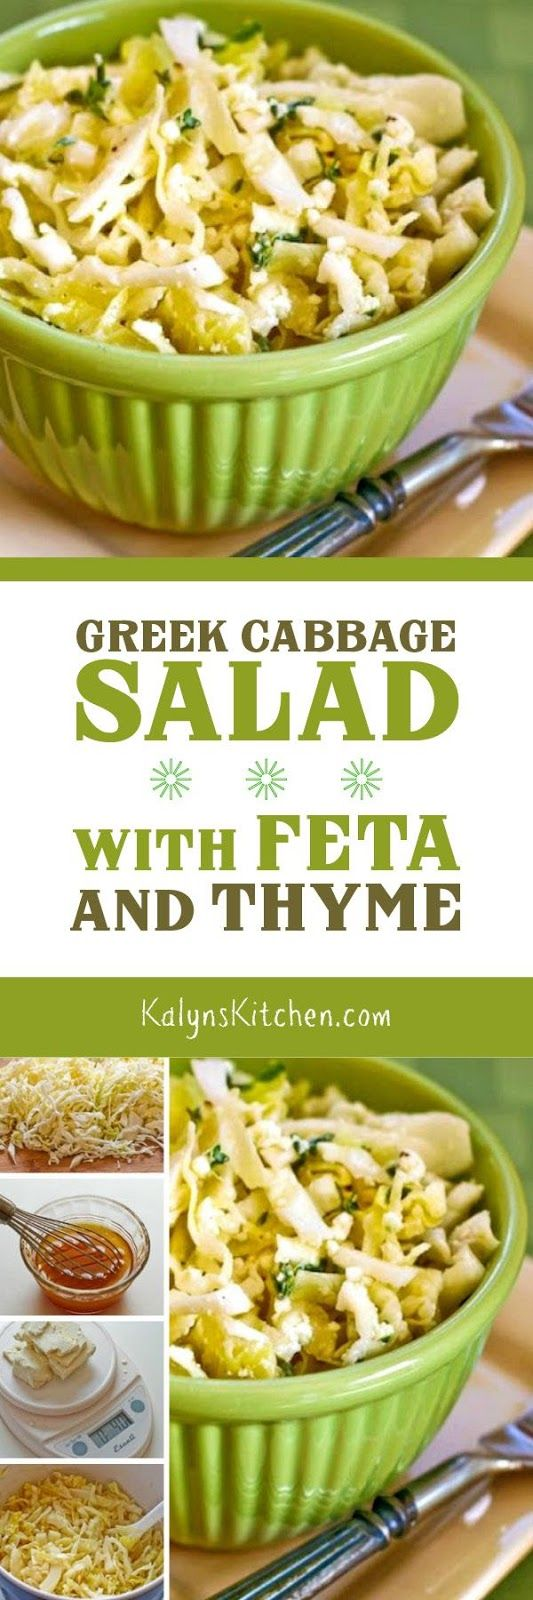 Greek Cabbage Salad With Feta And Thyme